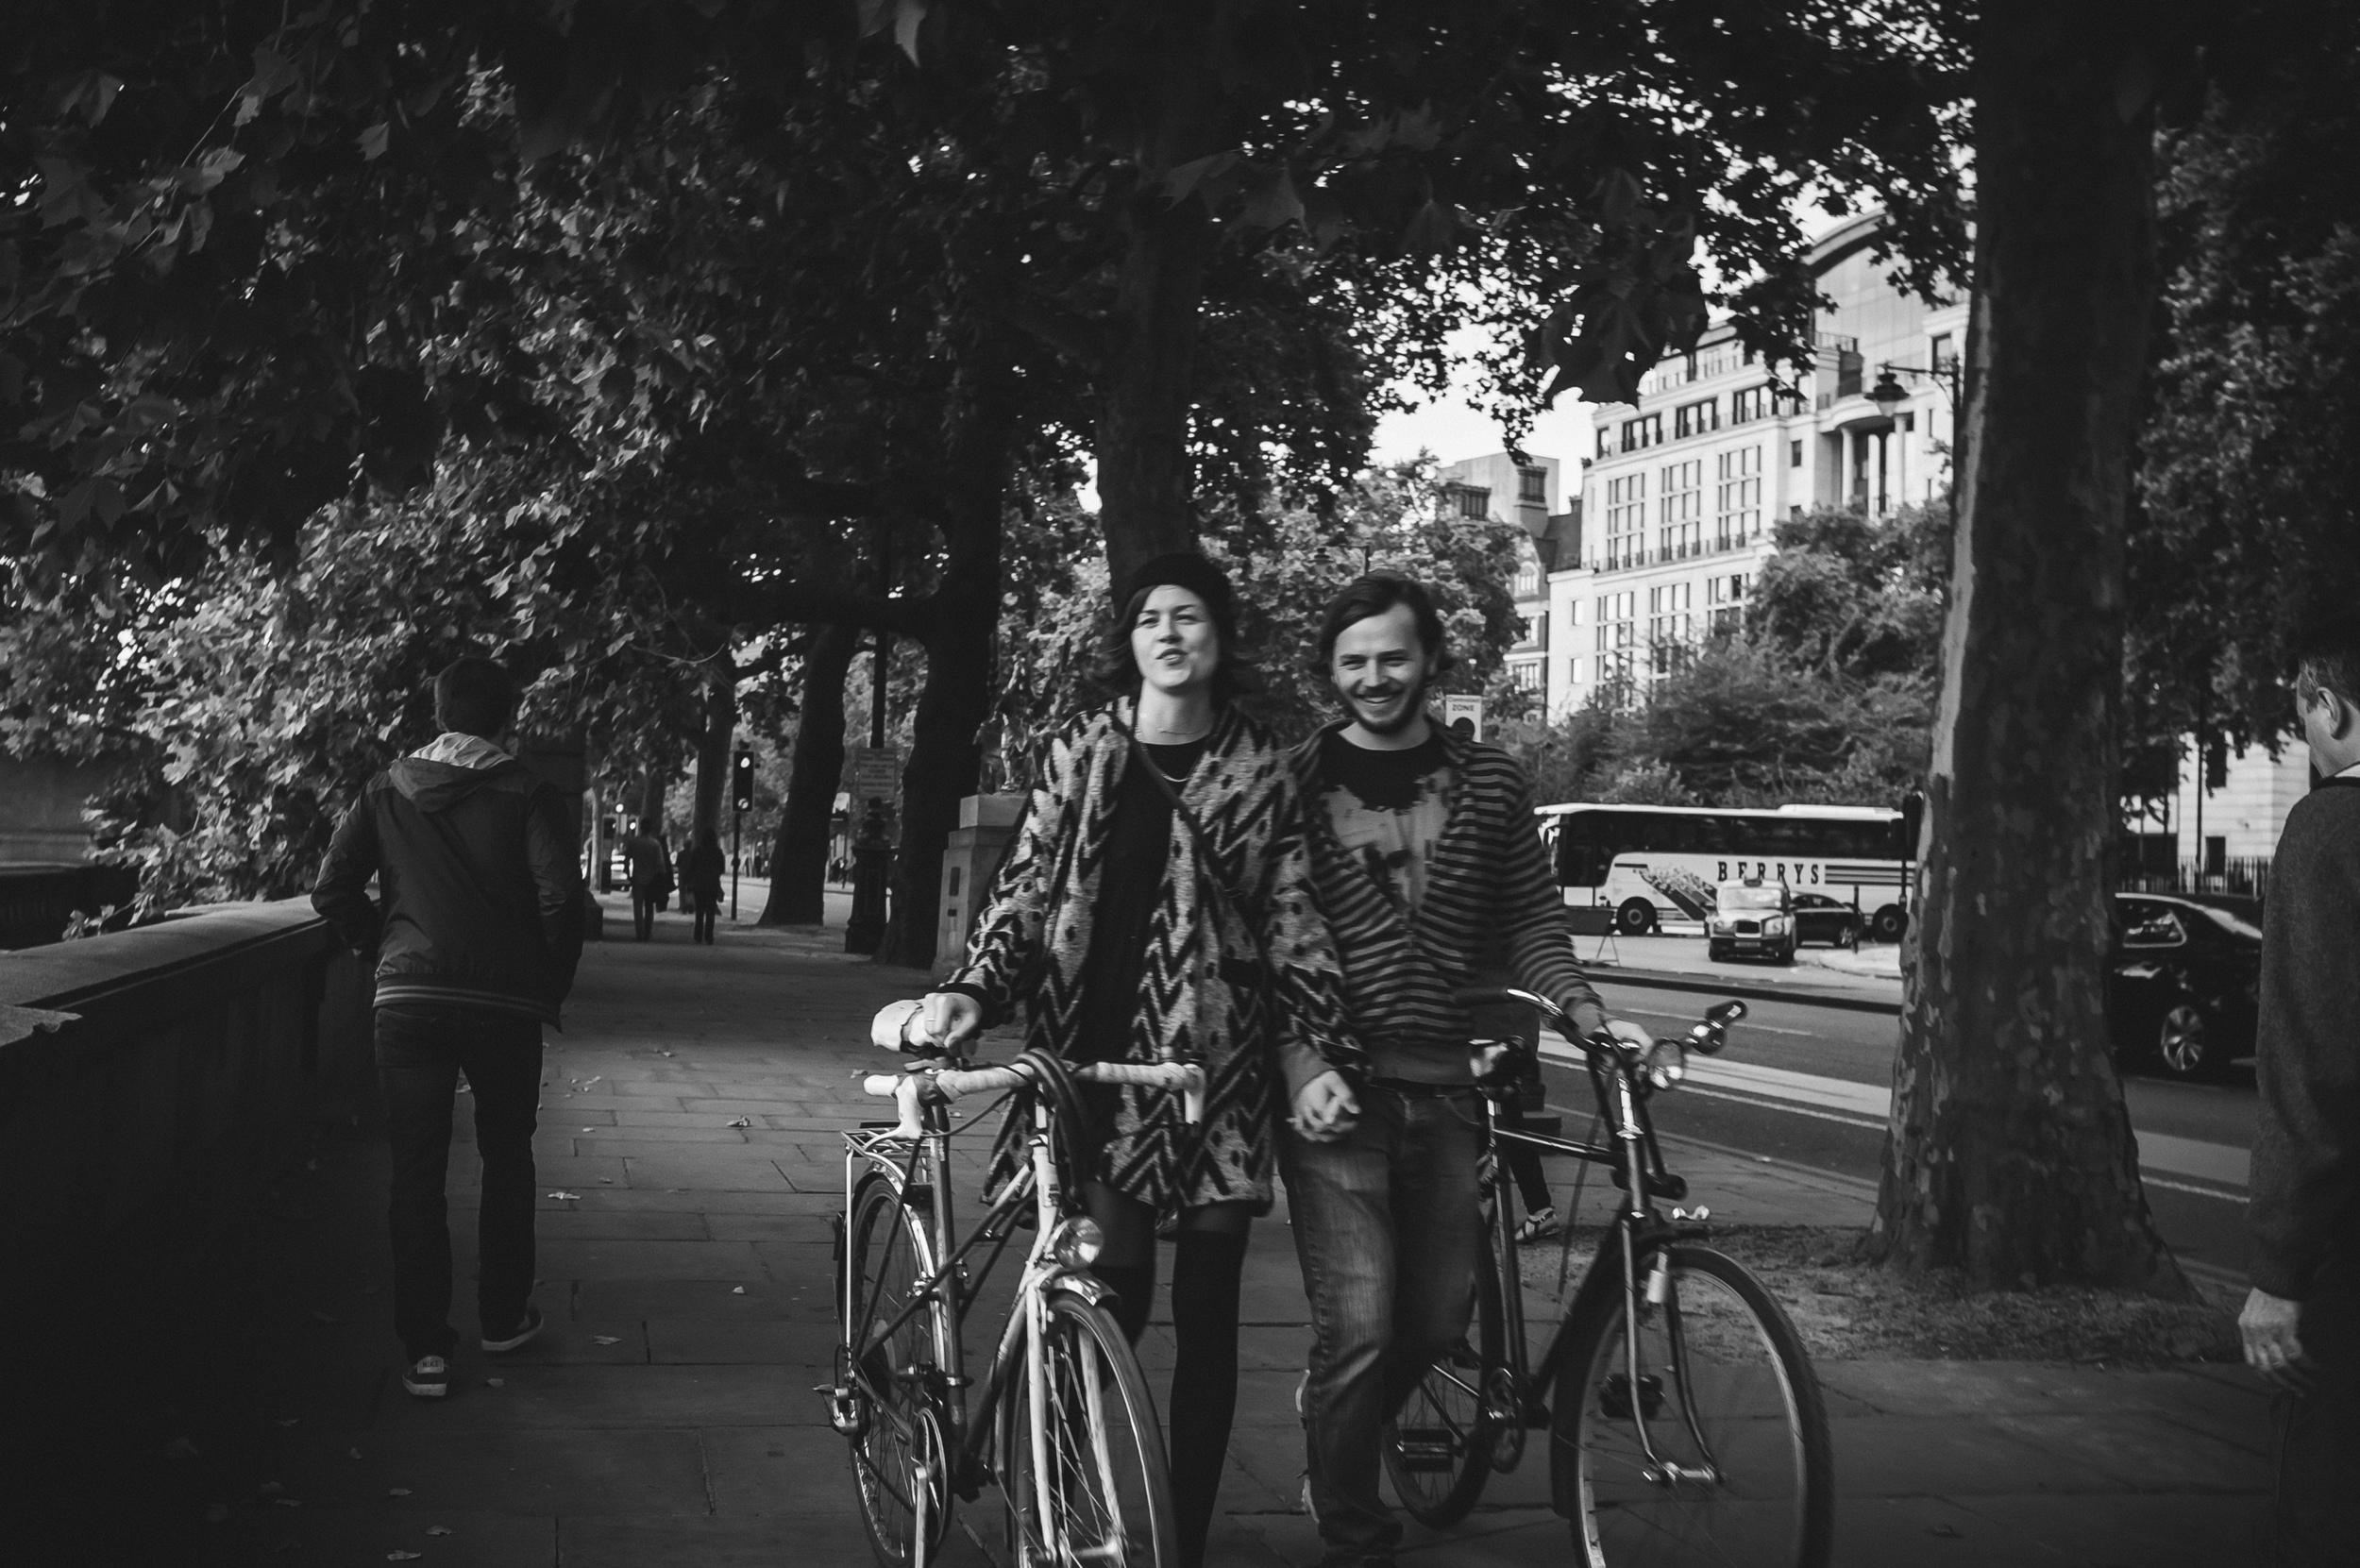 london_street_photography_with_the_fuji_x100-13.jpg